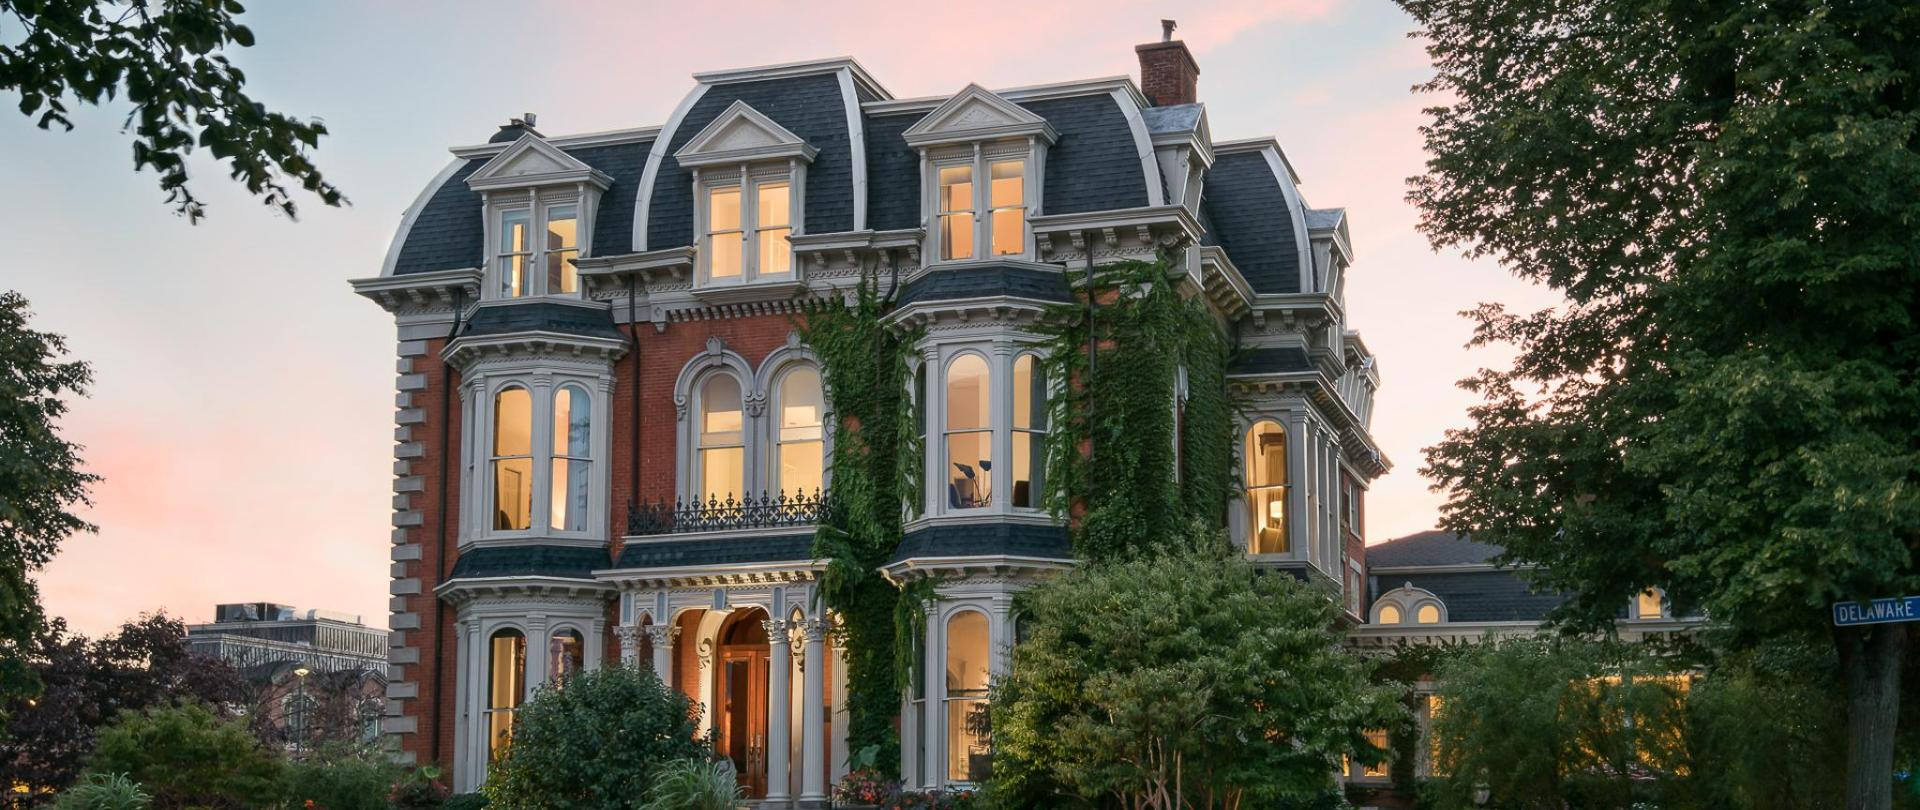 Buffalo S Luxury Hotel Wedding Venue The Mansion On Delaware Ave